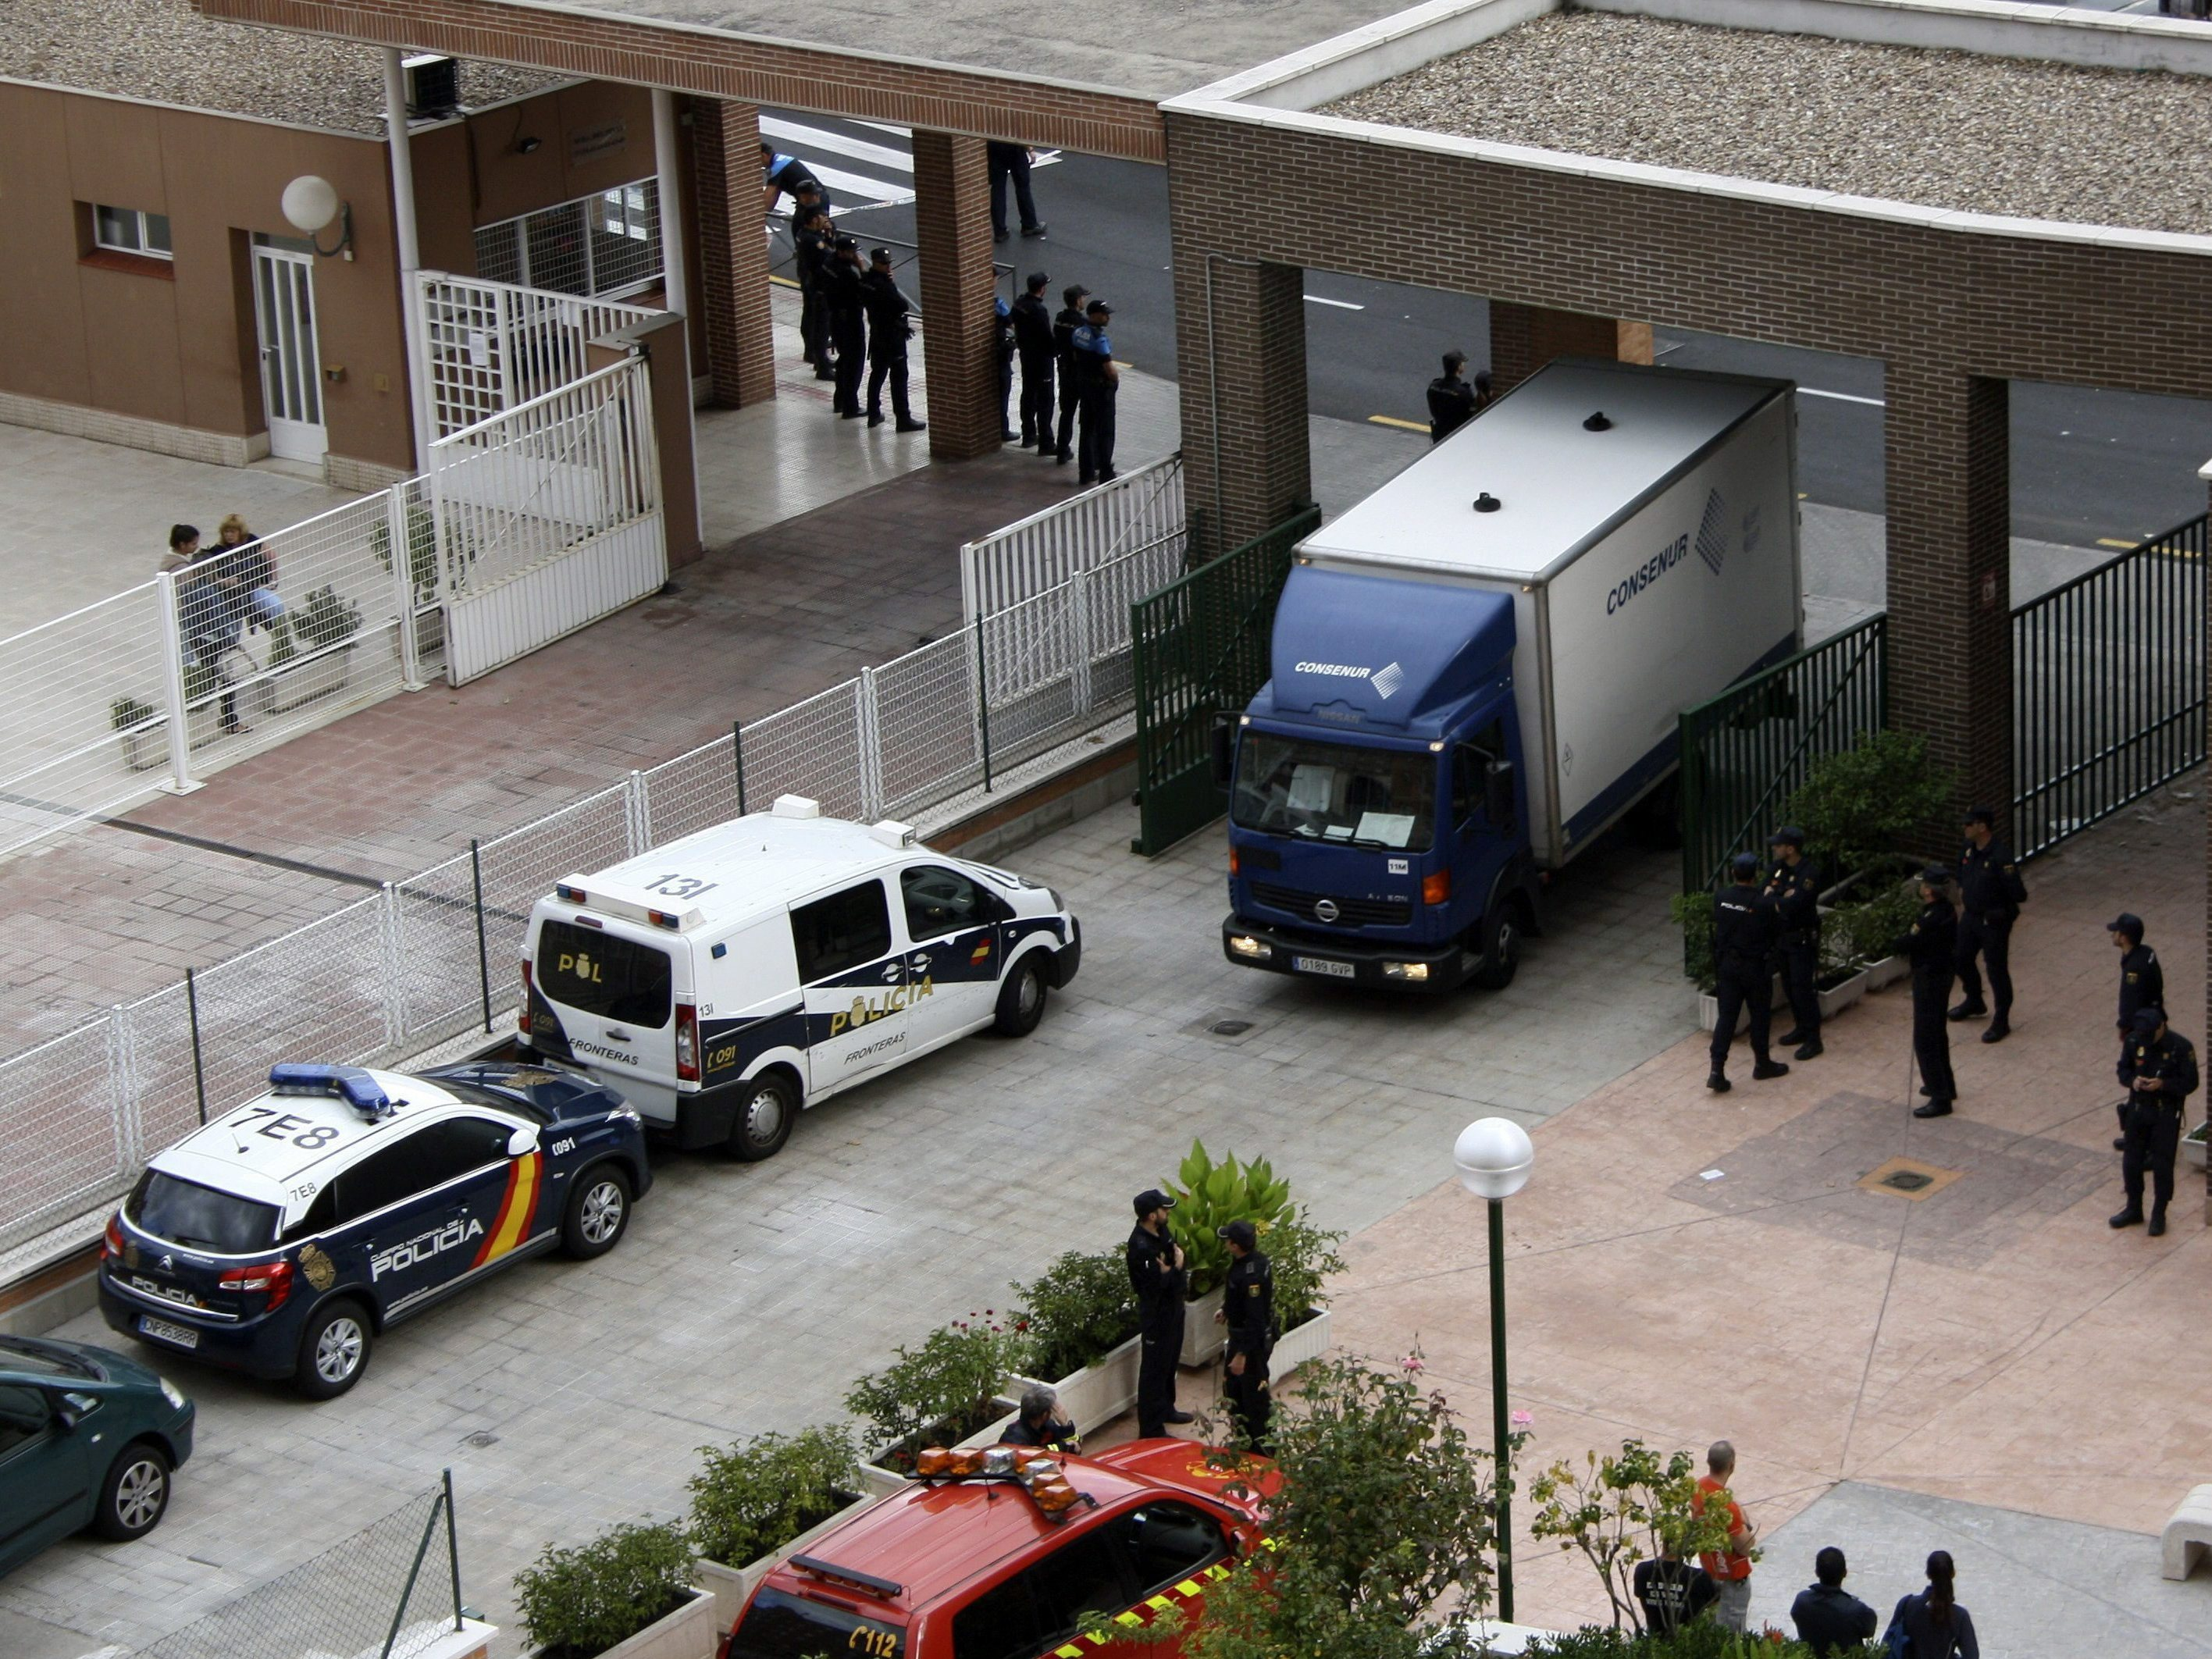 Hospital: Condition Of Spanish Nurse With Ebola Is Deteriorating